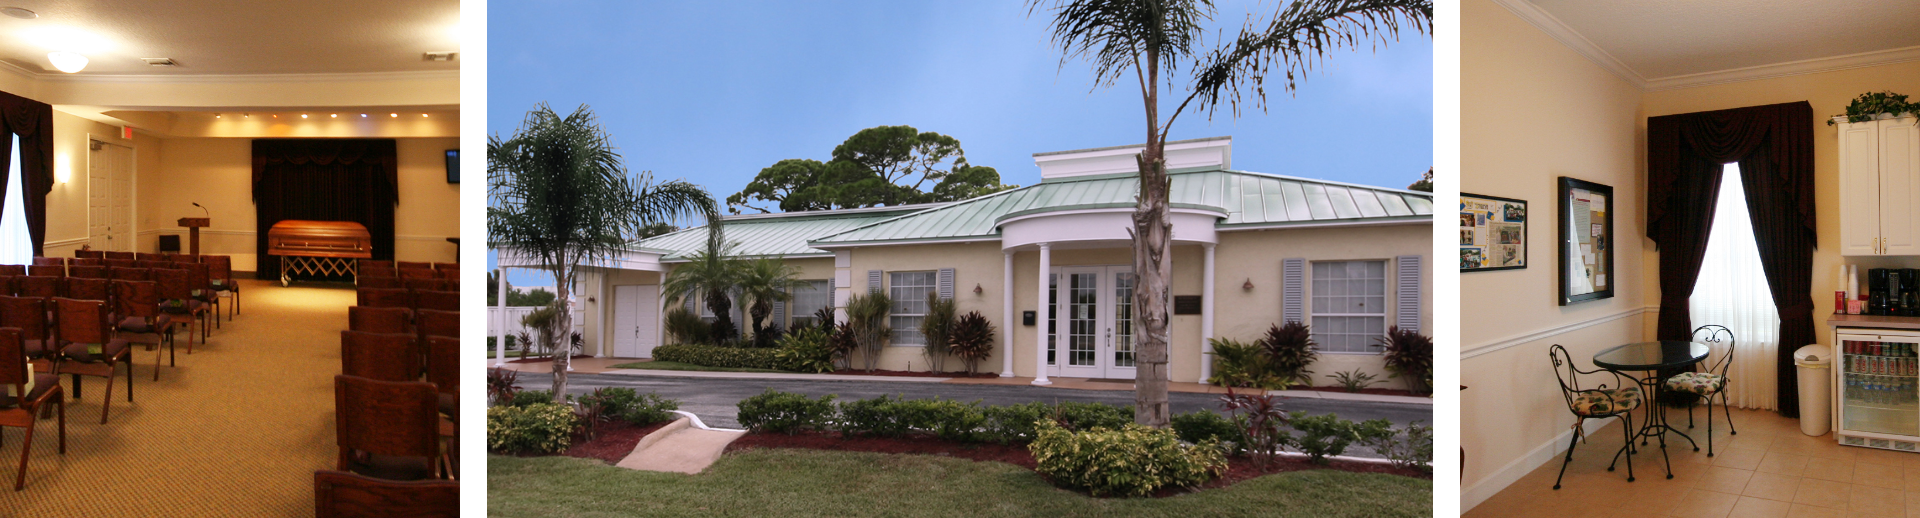 Funeral-Home-titusville-FL